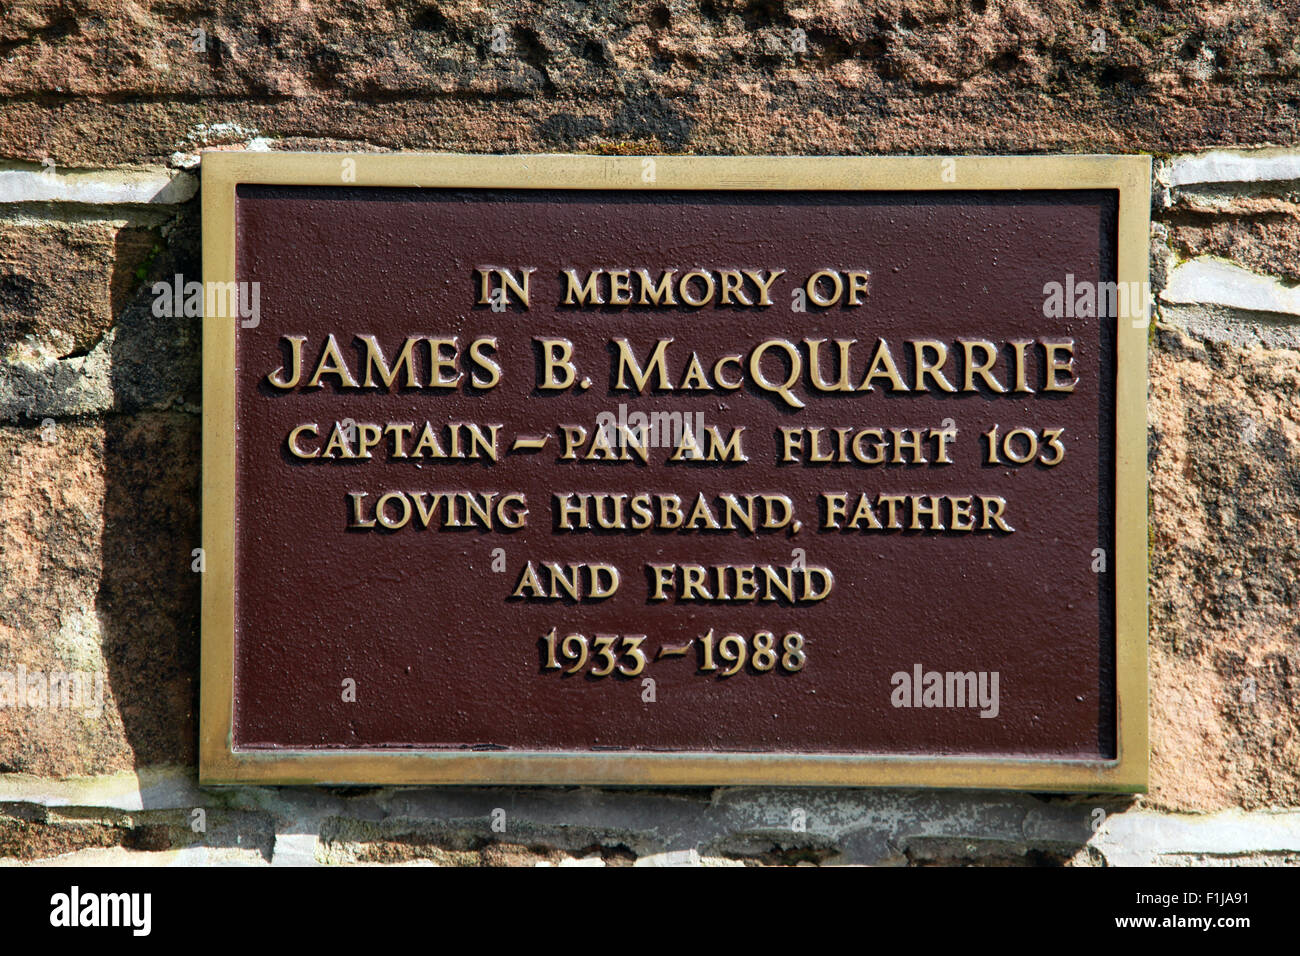 MacQuarrie Captain Pan Am Flight 103,Scotland,Lodge,Visitors,Centre,DLVC,Trust,Lockerbie,Memorial,Remembrance,Scotland,Victims,Pan,Am,PanAm,flight,103,bomb,bombing,terrorist,December,1988,attack,crash,dead,site,21/12/1988,270,victims,Scottish,Town,conspiracy,blast,Tundergarth,Room,garden,New York,GoTonySmith,Lodge,Visitors,Centre,DLVC,Trust,Lockerbie,Memorial,Scotland,Victims,Pan,Am,PanAm,flight,103,bomb,bombing,terrorist,December,1988,attack,crash,dead,site,21/12/1988,270,victims,Scottish,Town,conspiracy,blast,Tundergarth,Room,garden,of,Dryfesdale,Cemetery,news,Cultural,understanding,remembering,innocent,transatlantic,Frankfurt,Detroit,Libyan,Libya,Colonel Muammar Gaddafi,civil,case,compensation,terrorism,PA103,30,30years,years,Syracuse,University,SU,family,collections,Story,Archive,Archives,40,35,Timeline,saga,disaster,air,Scholars,program,programs,remembrance,Clipper Maid of the Seas,N739PA,Boeing,727,plane,aircraft,Scotland,UK,United Kingdom,GB,Great Britain,resting,place,Buy Pictures of,Buy Images Of,New York,al megrahi,30 Years